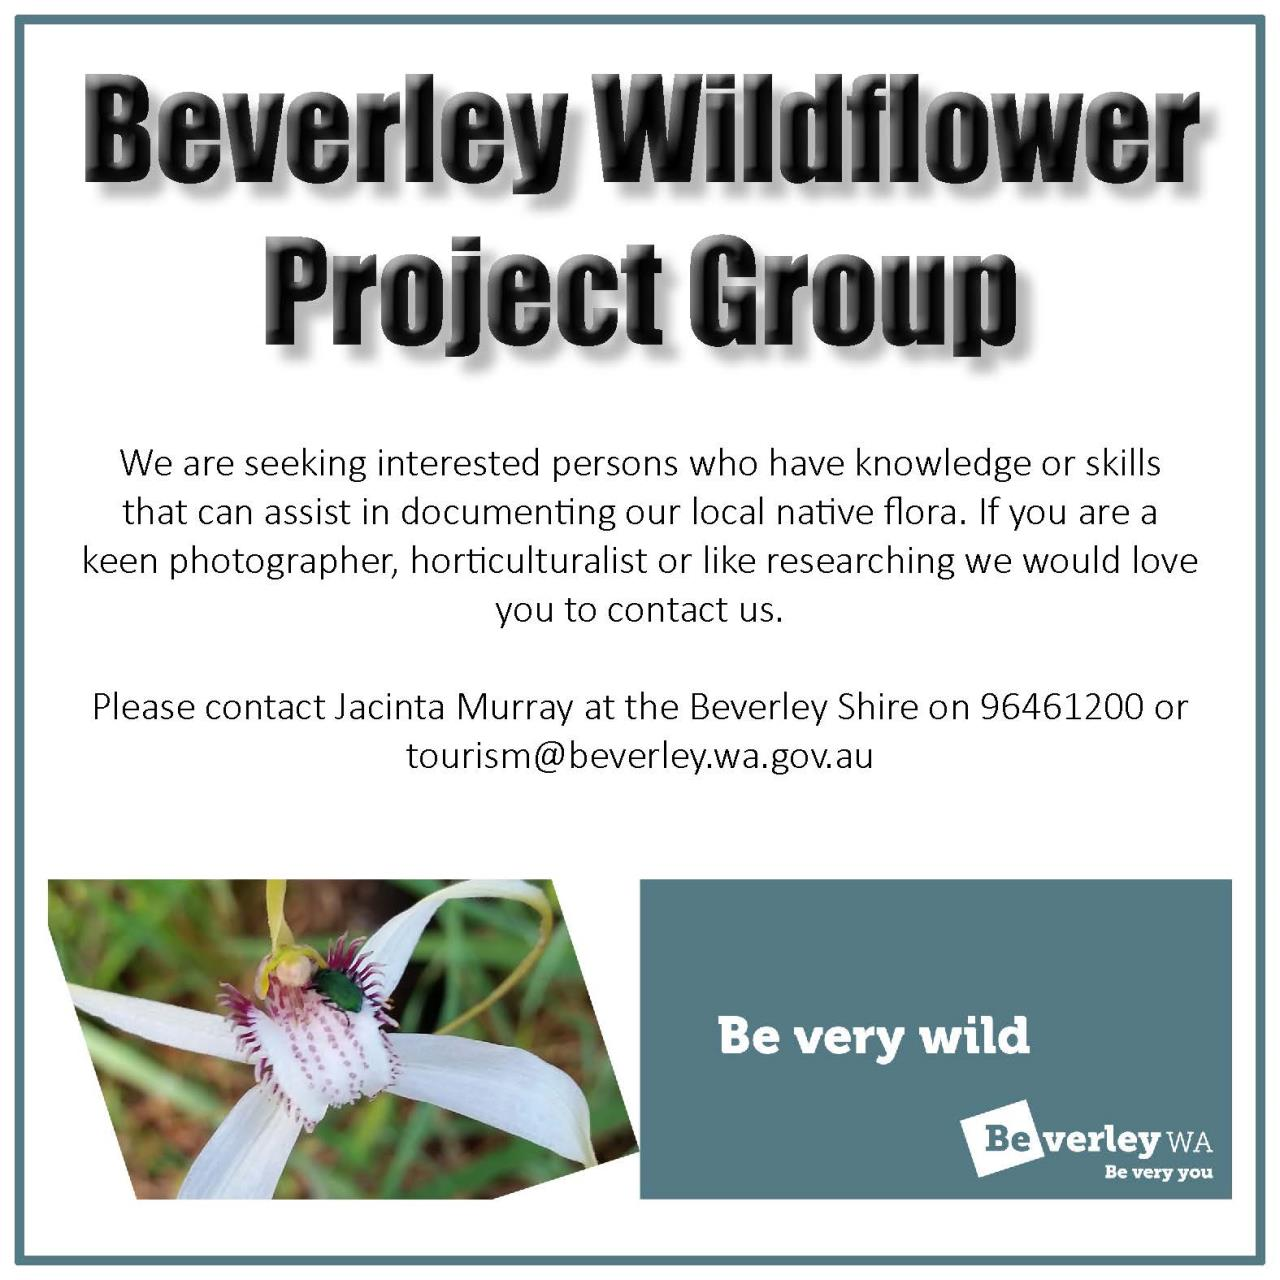 Wildflower Project